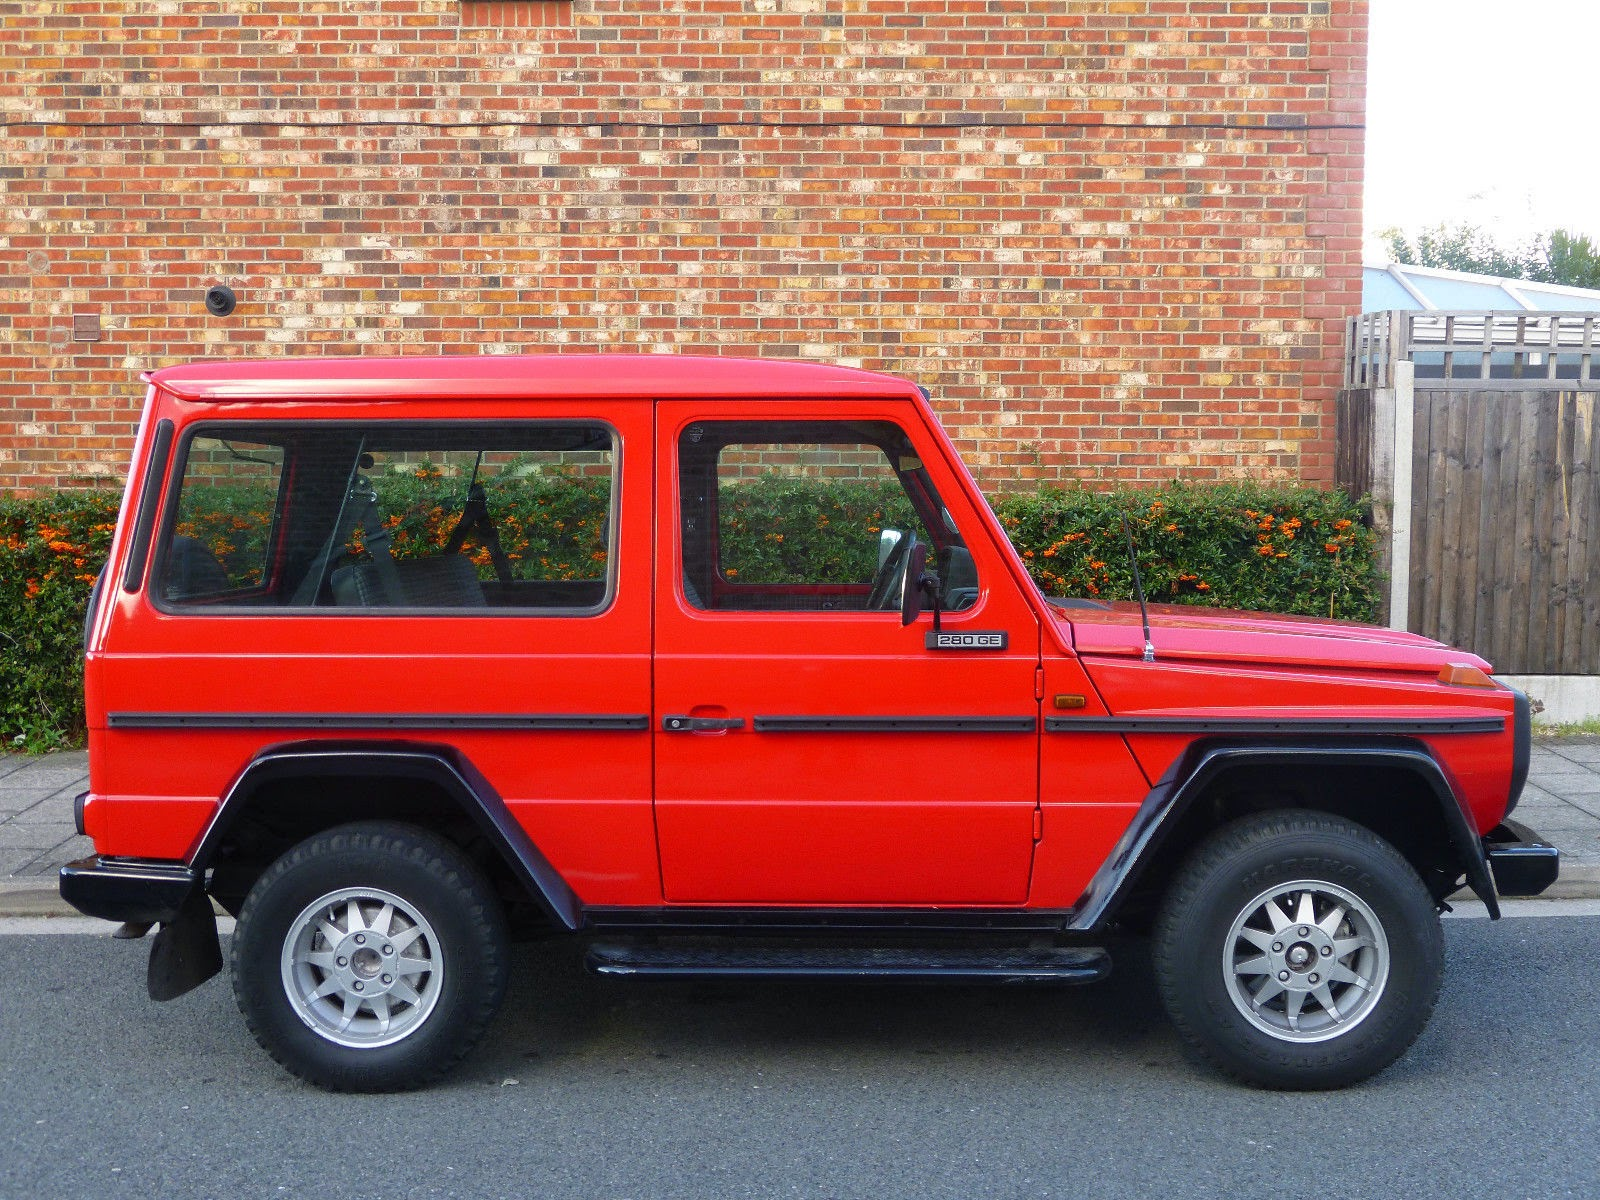 Diesel Near Me >> For Sale Mercedes 280GE G-Wagon 1983 - 4x4 Cars